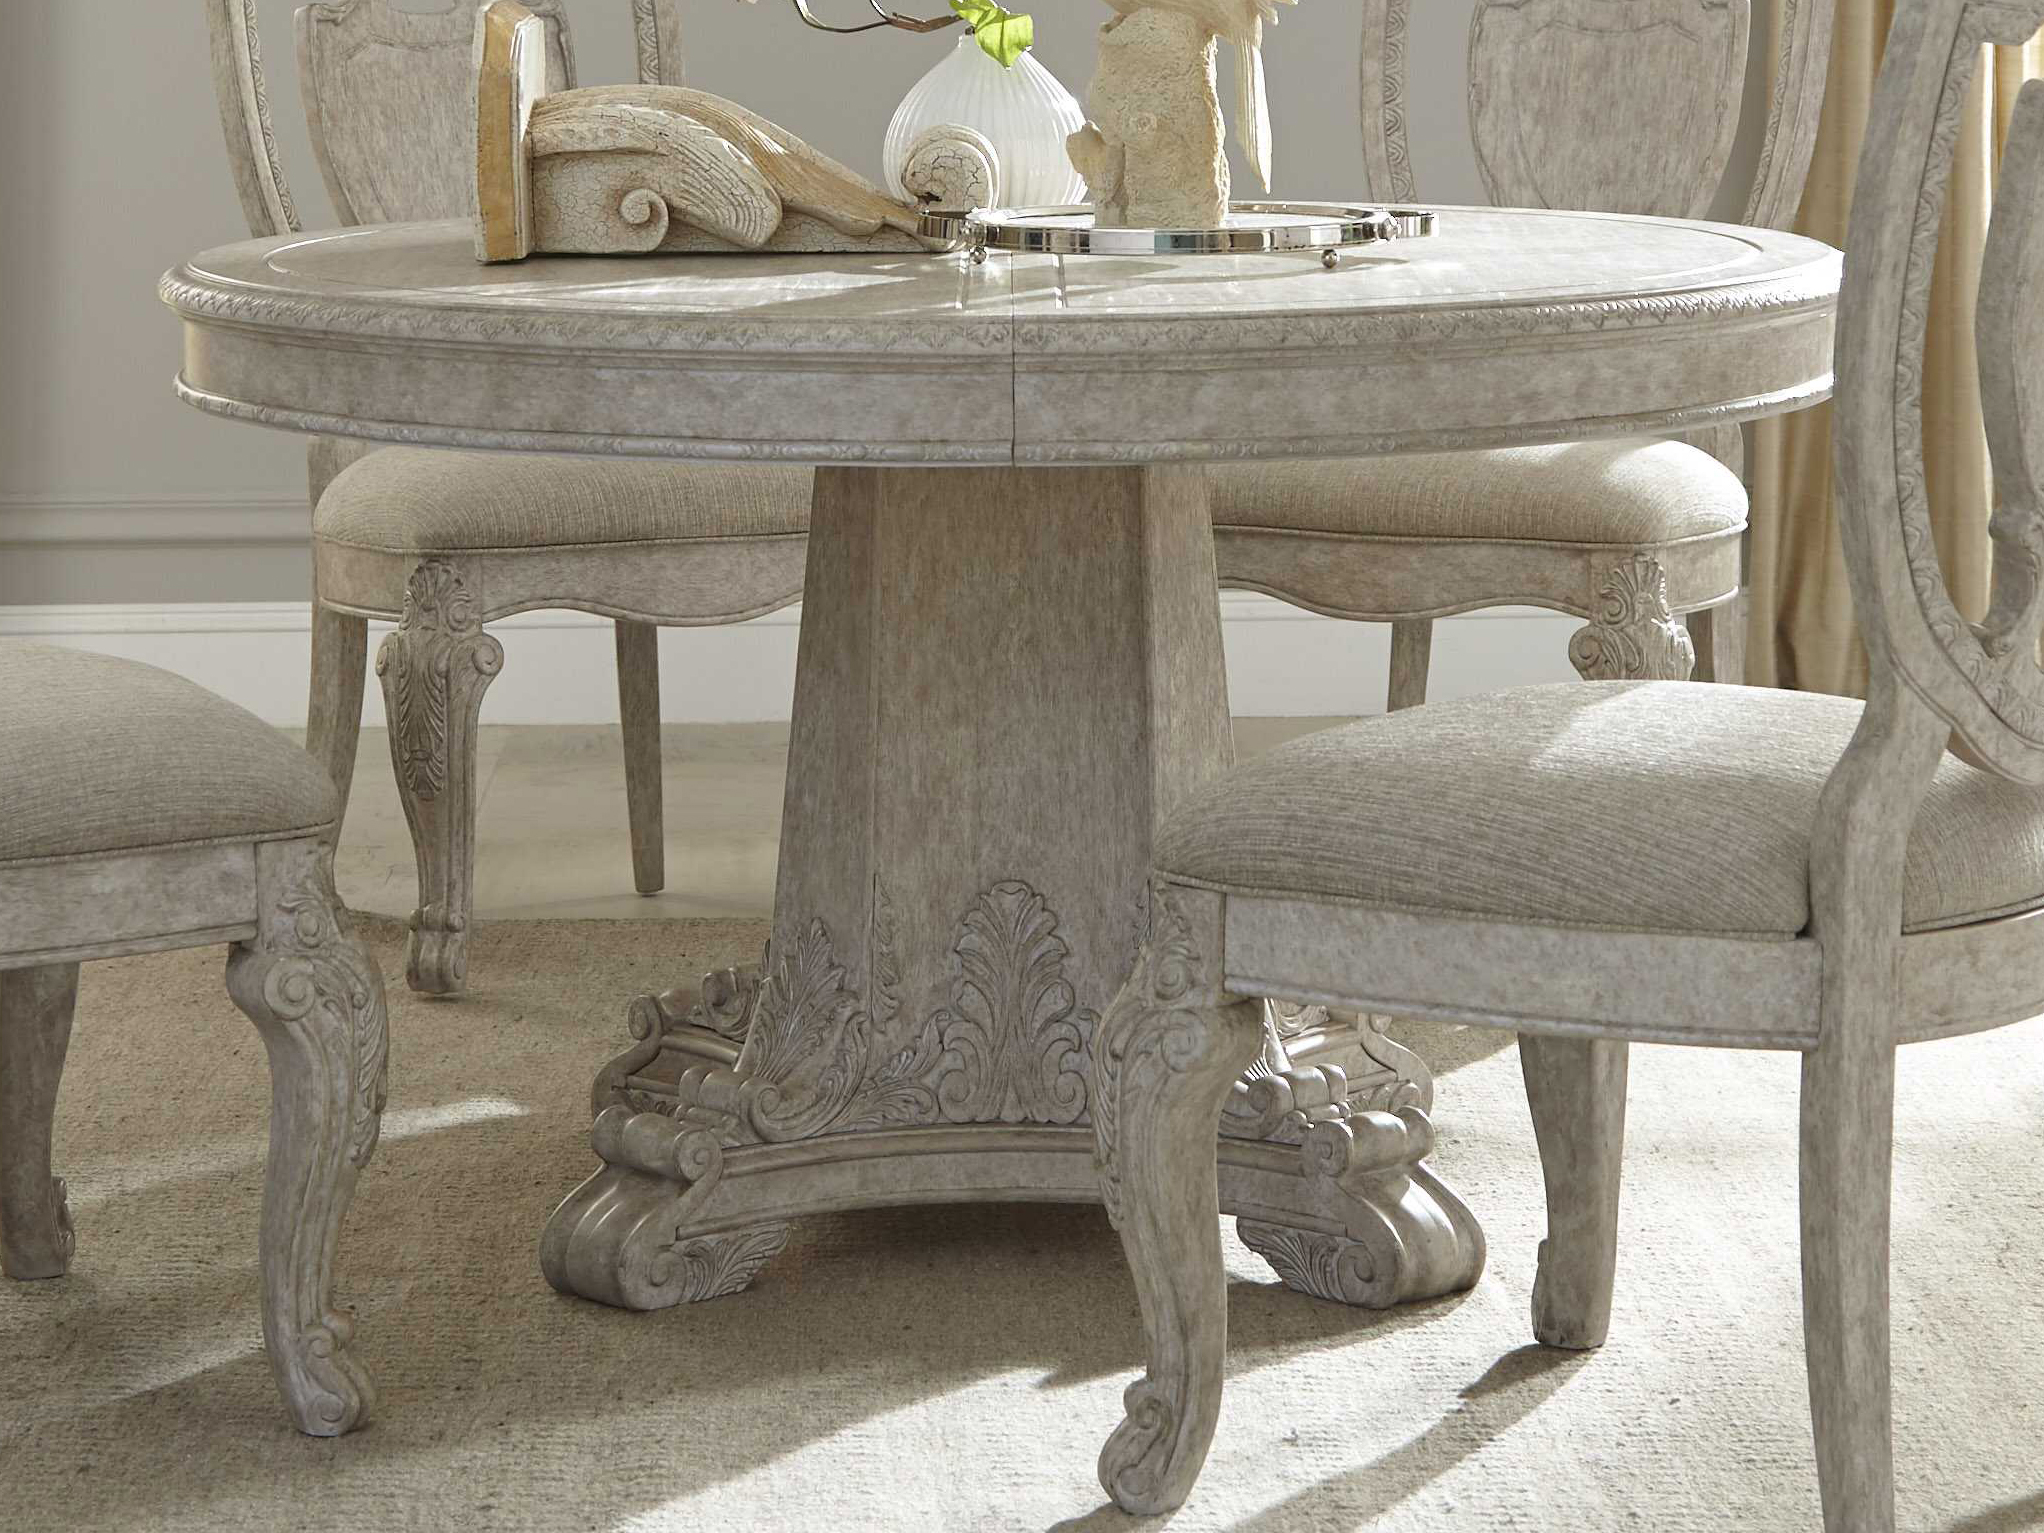 ART Furniture Renaissance Dove Grey with Silver Tipping 73  : AT24322526171zm from www.luxedecor.com size 2044 x 1533 jpeg 1649kB